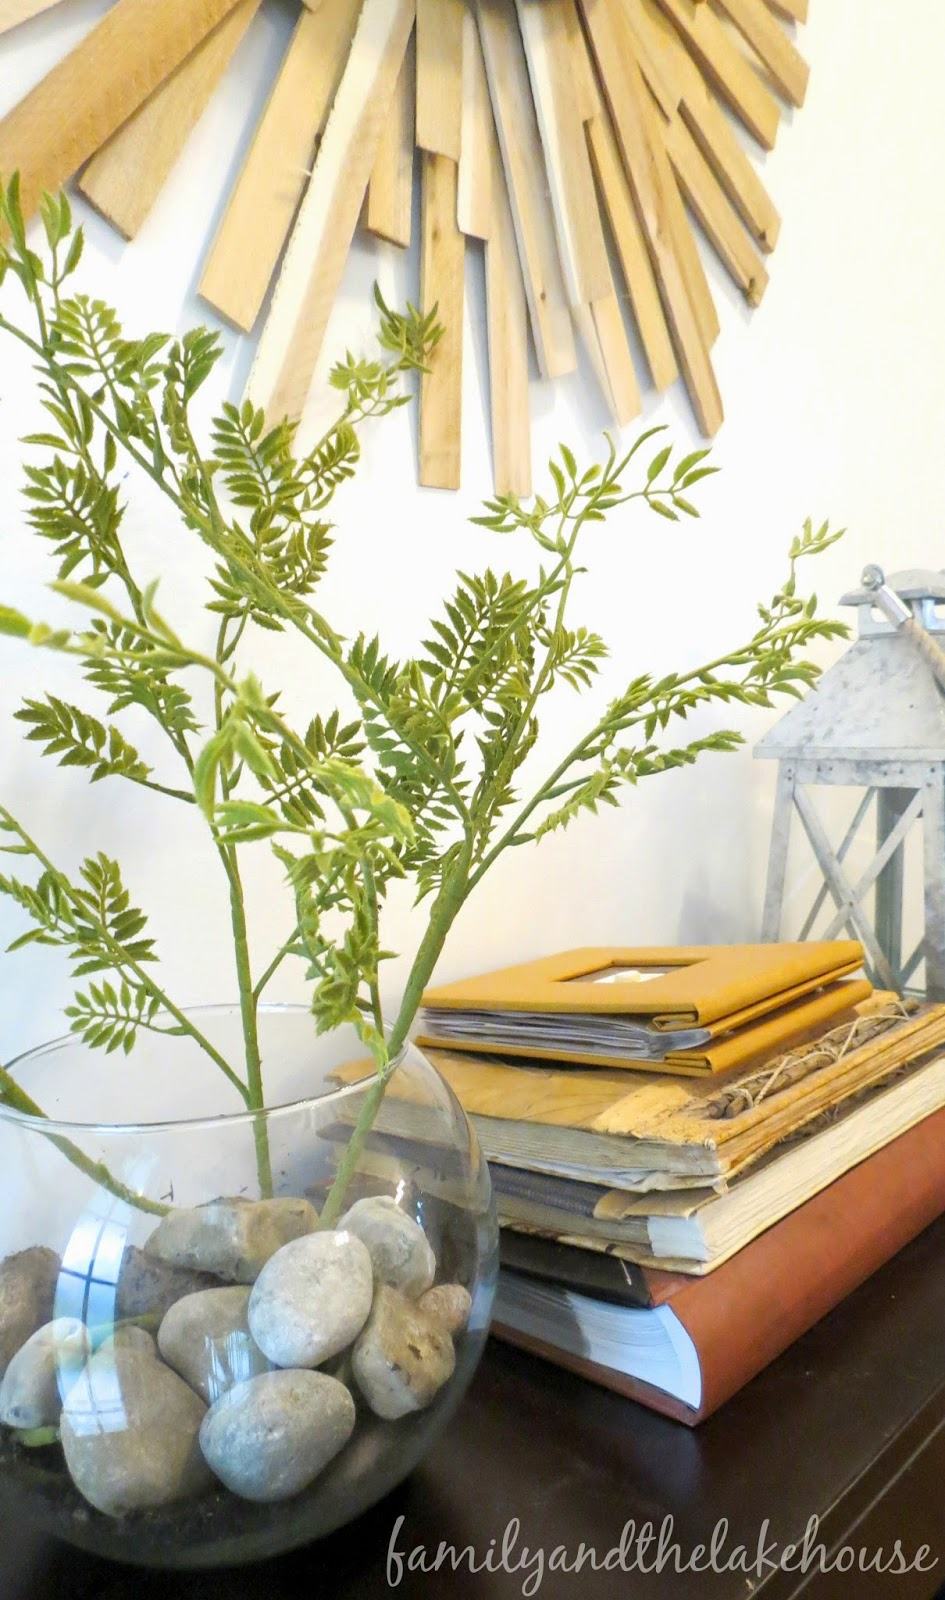 Family and the Lake House - Faux Plant